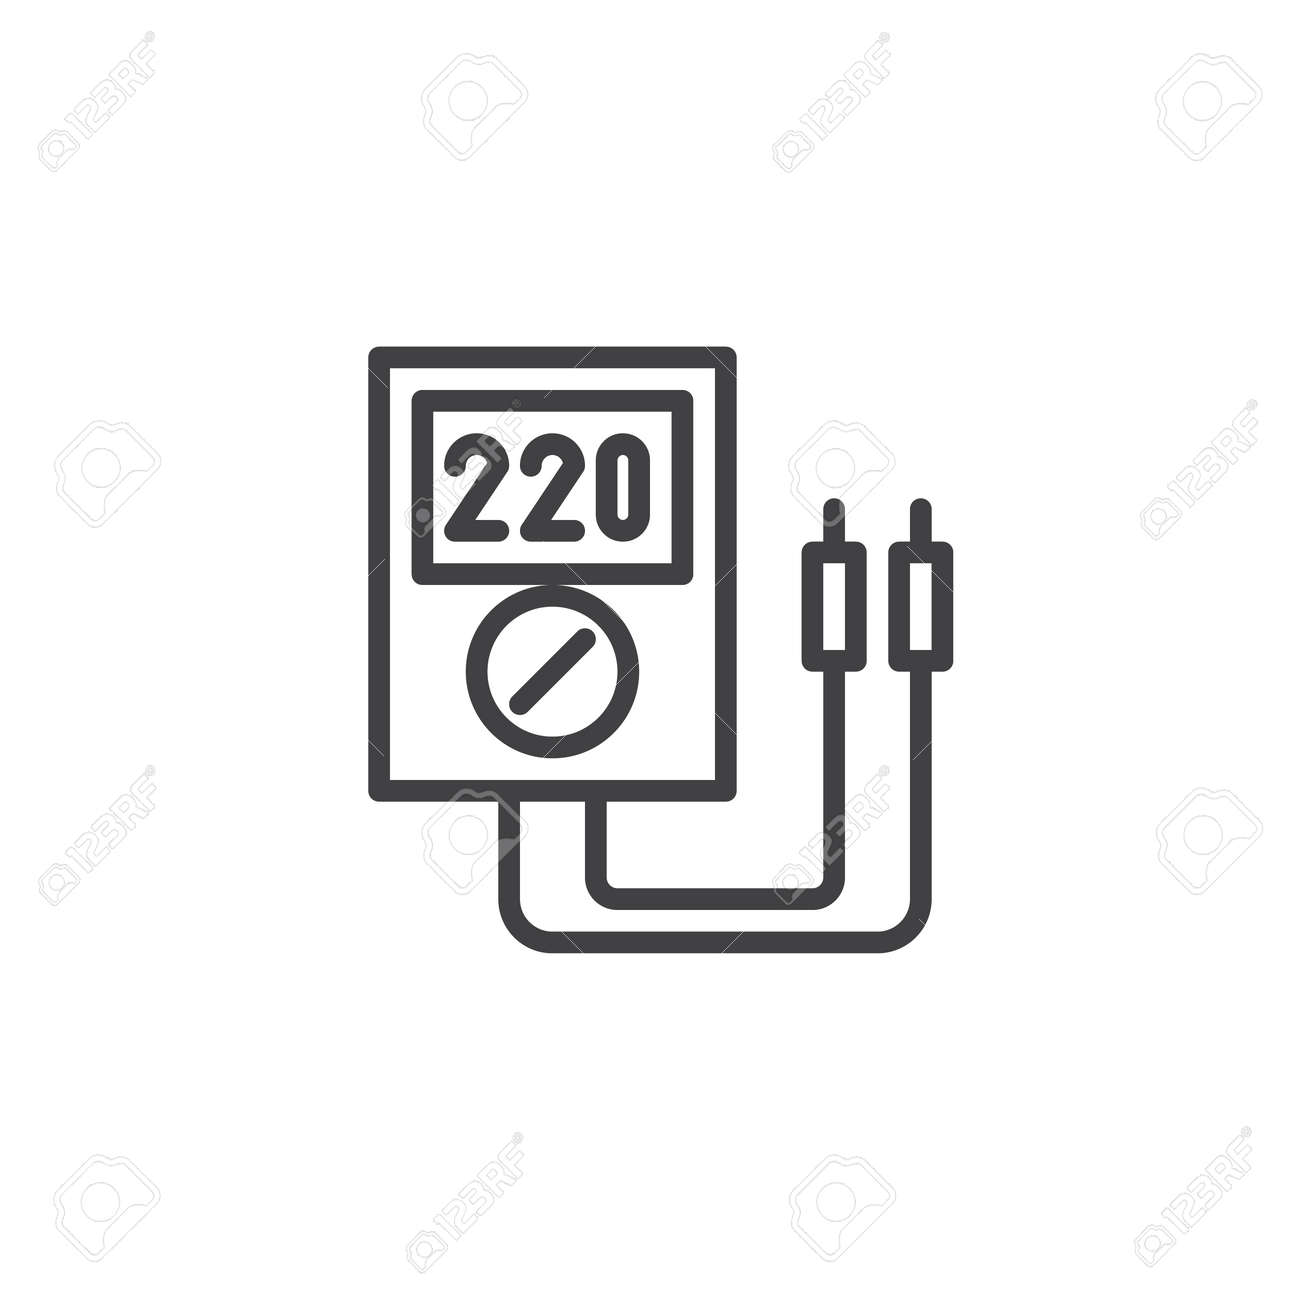 Voltmeter Line Icon Royalty Free Cliparts, Vectors, And Stock ...